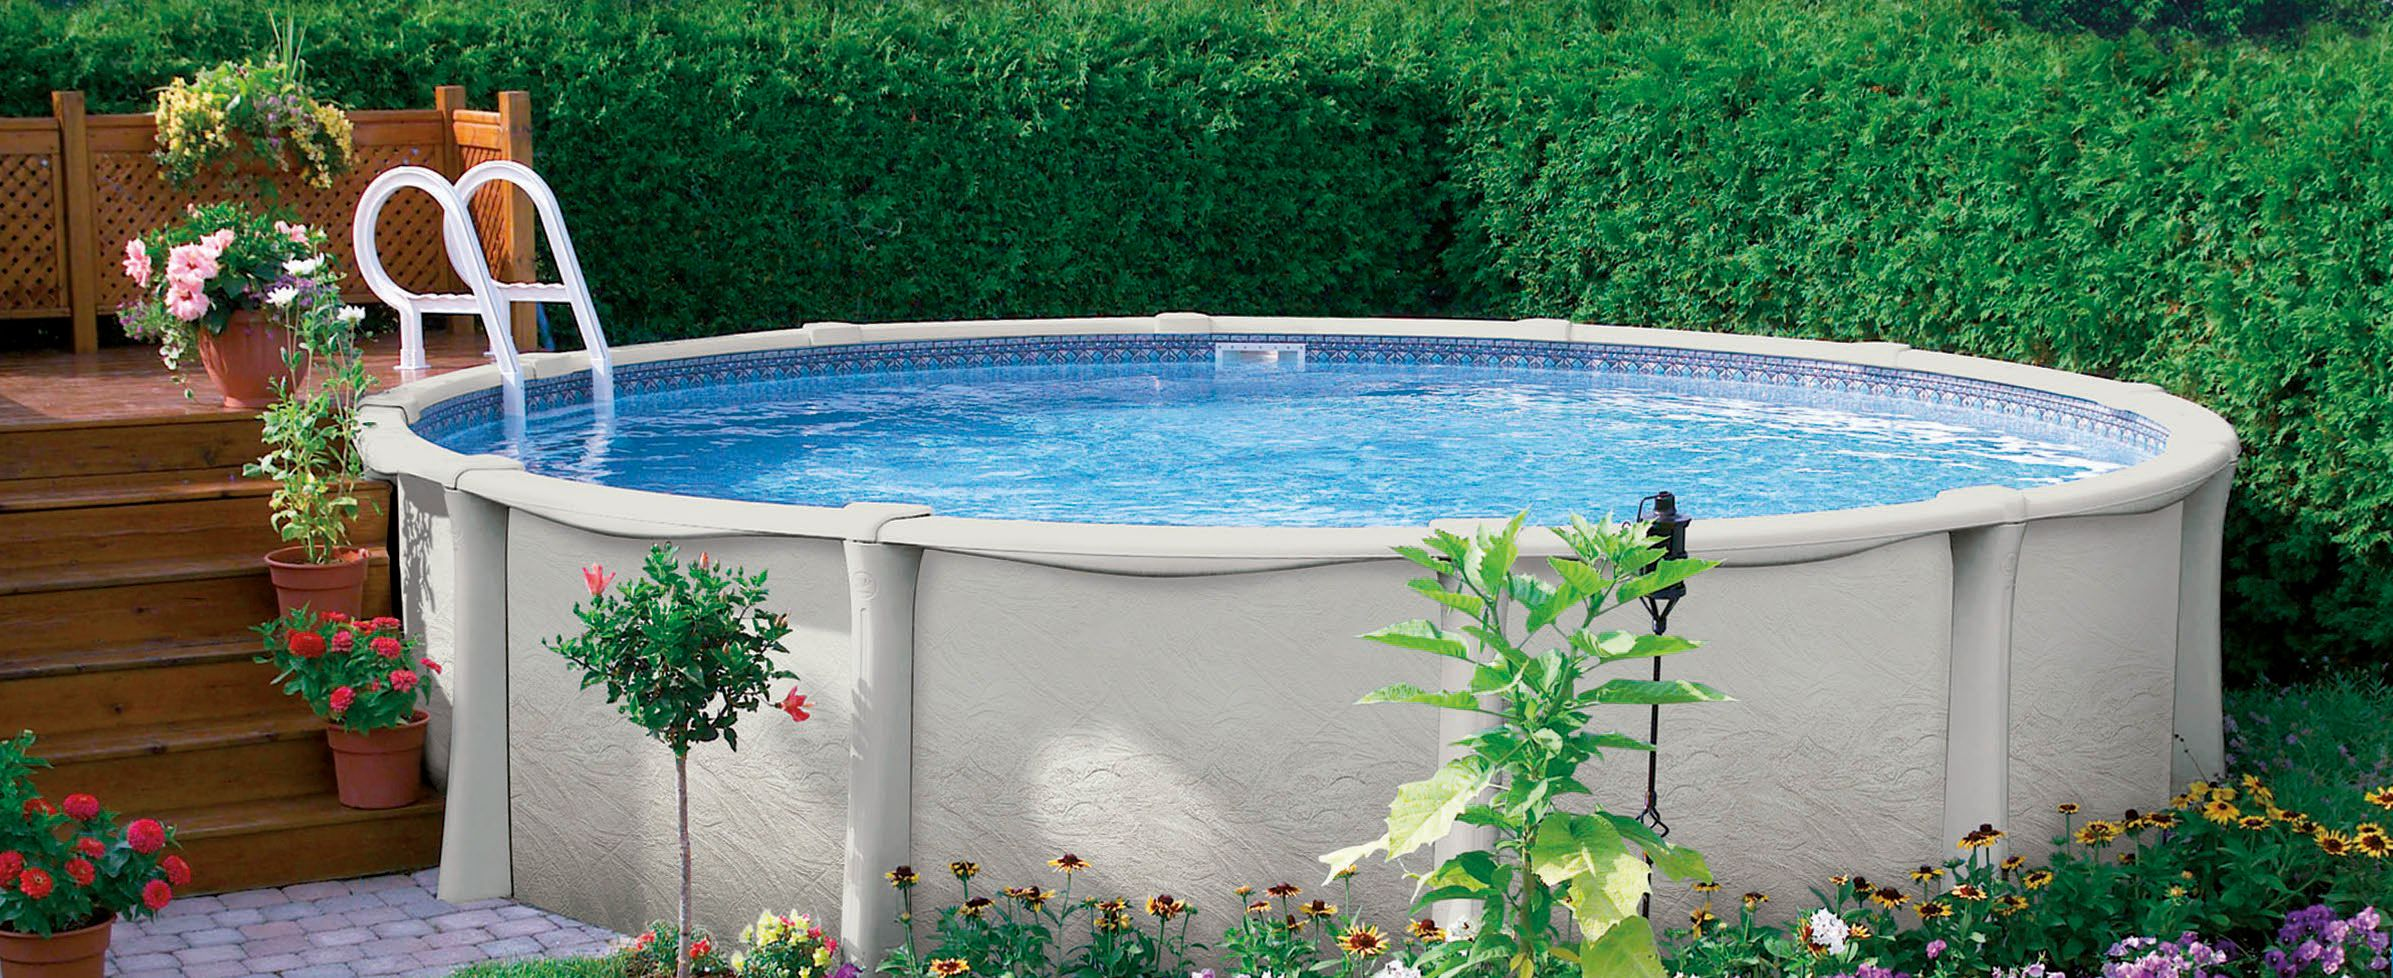 Piscine hors sol piscine for Piscine hors sol durable